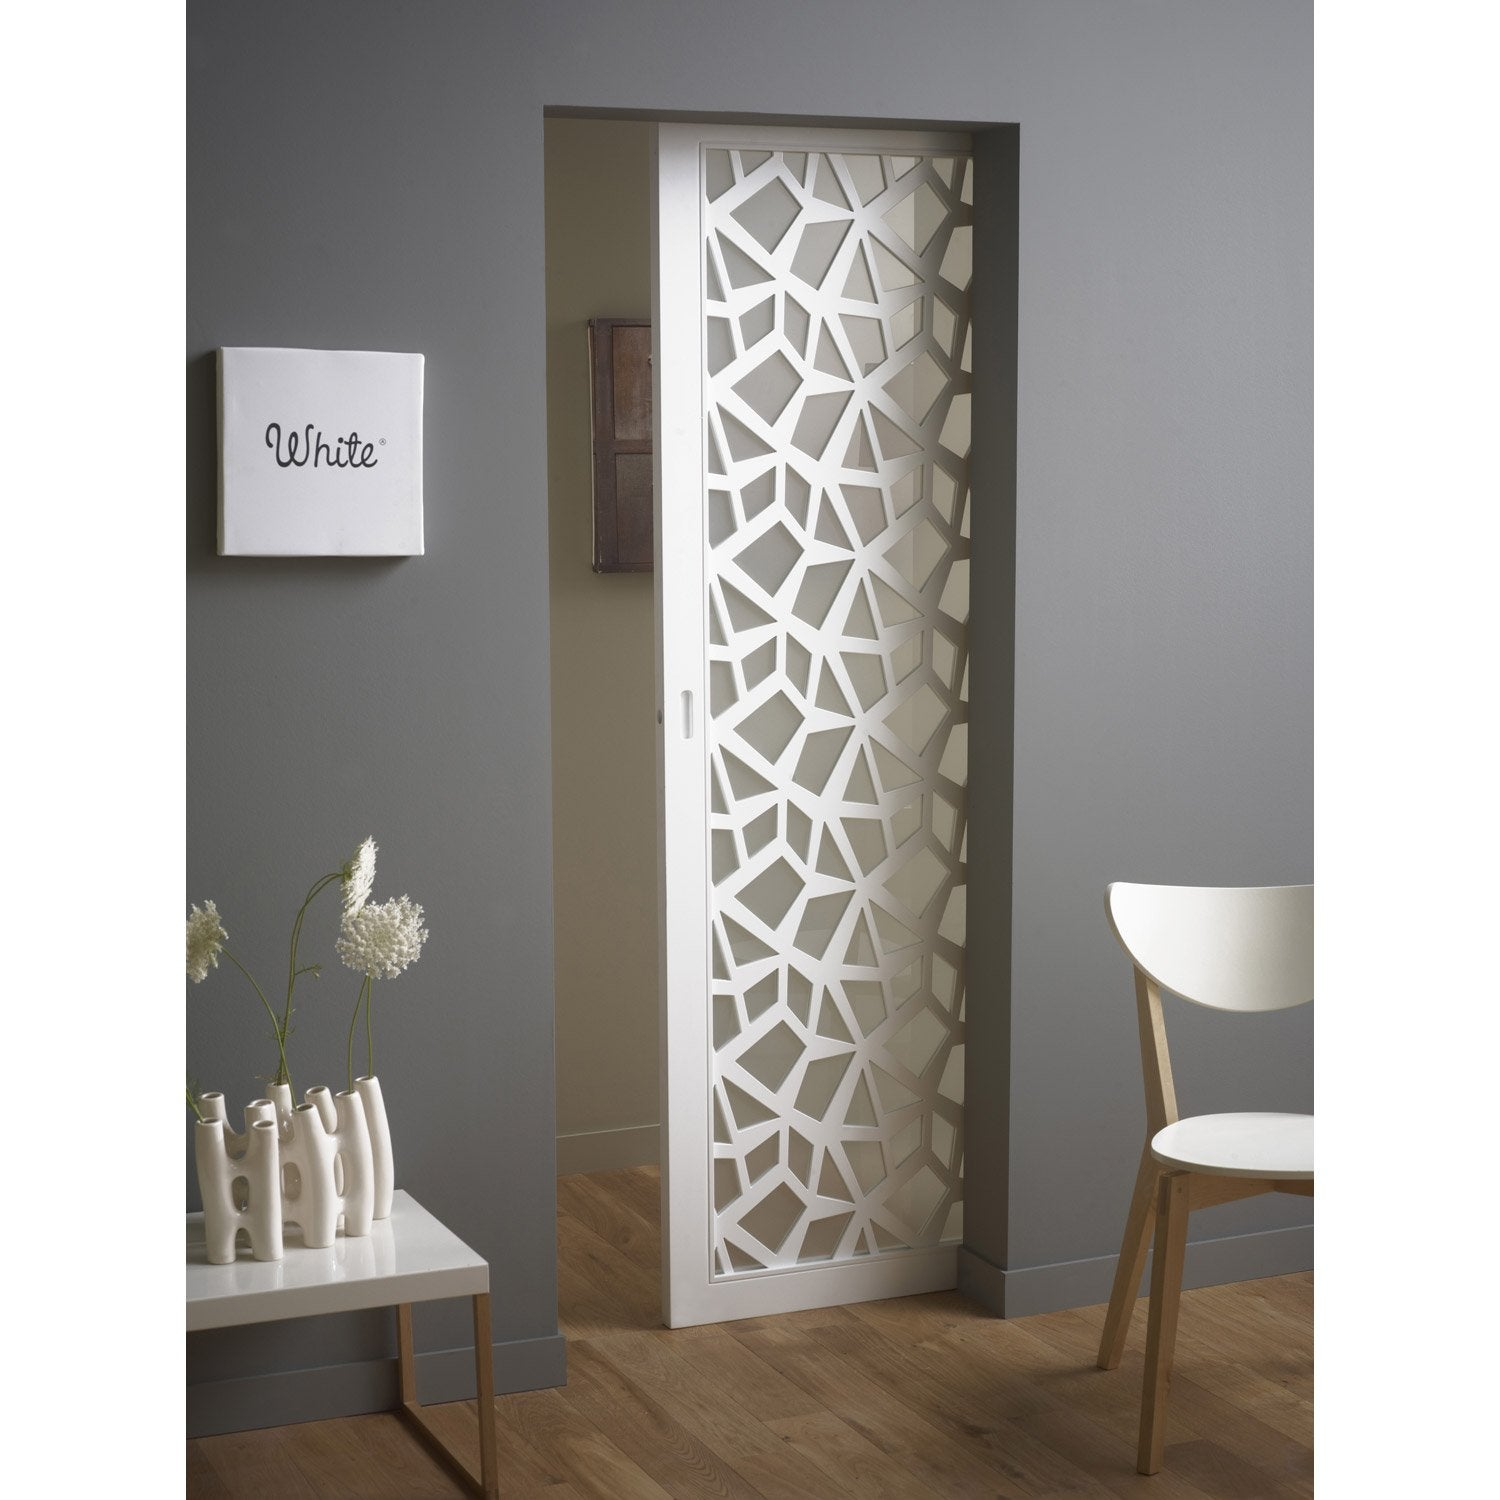 Ensemble porte coulissante crash verre et mdf laqu for Porte coulissante leroy merlin sur mesure